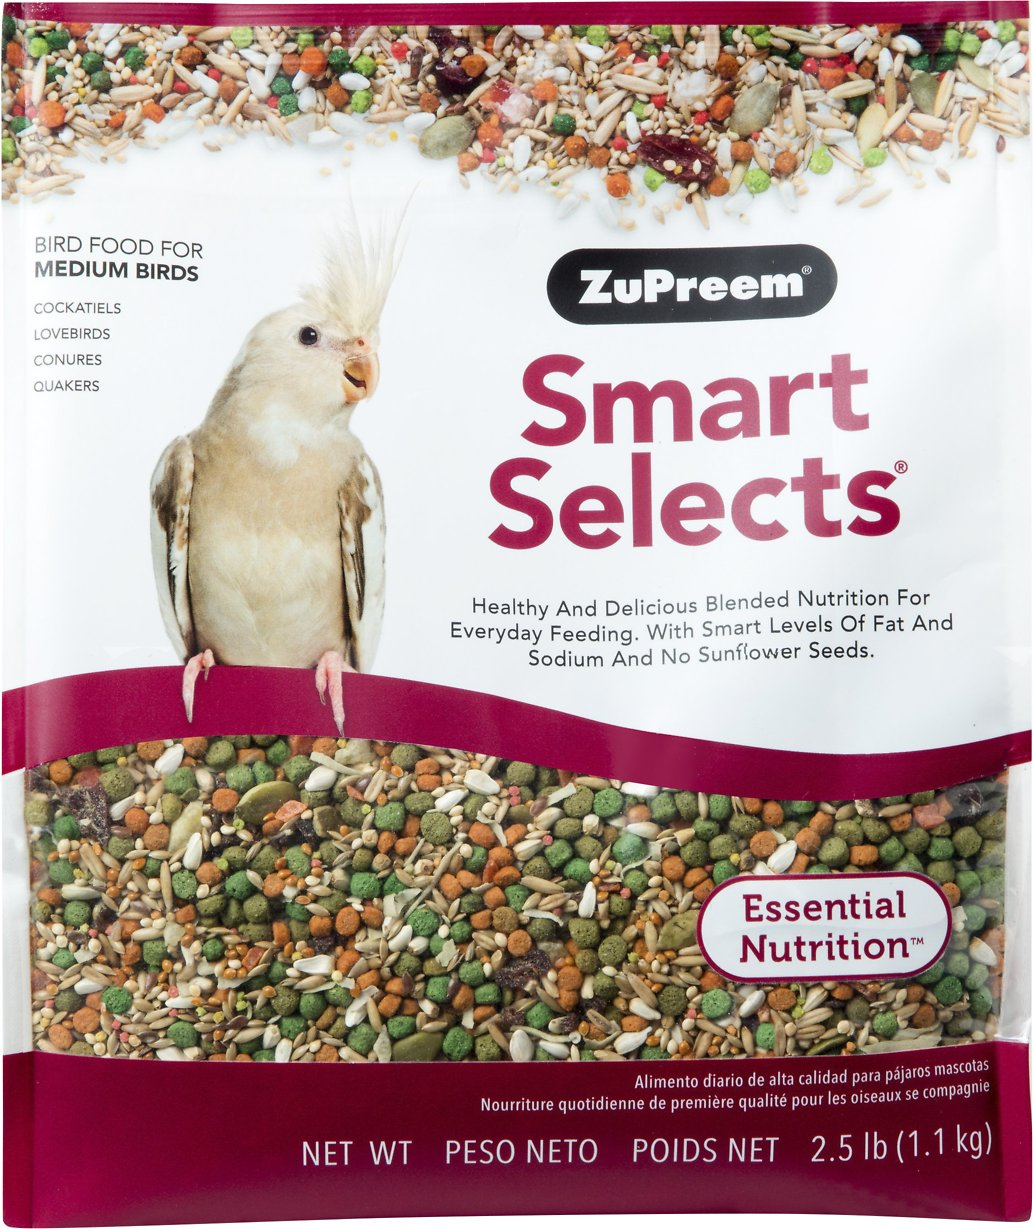 ZuPreem Smart Selects Cockatiel & Lovebird Bird Food, 2.5-lb bag Image